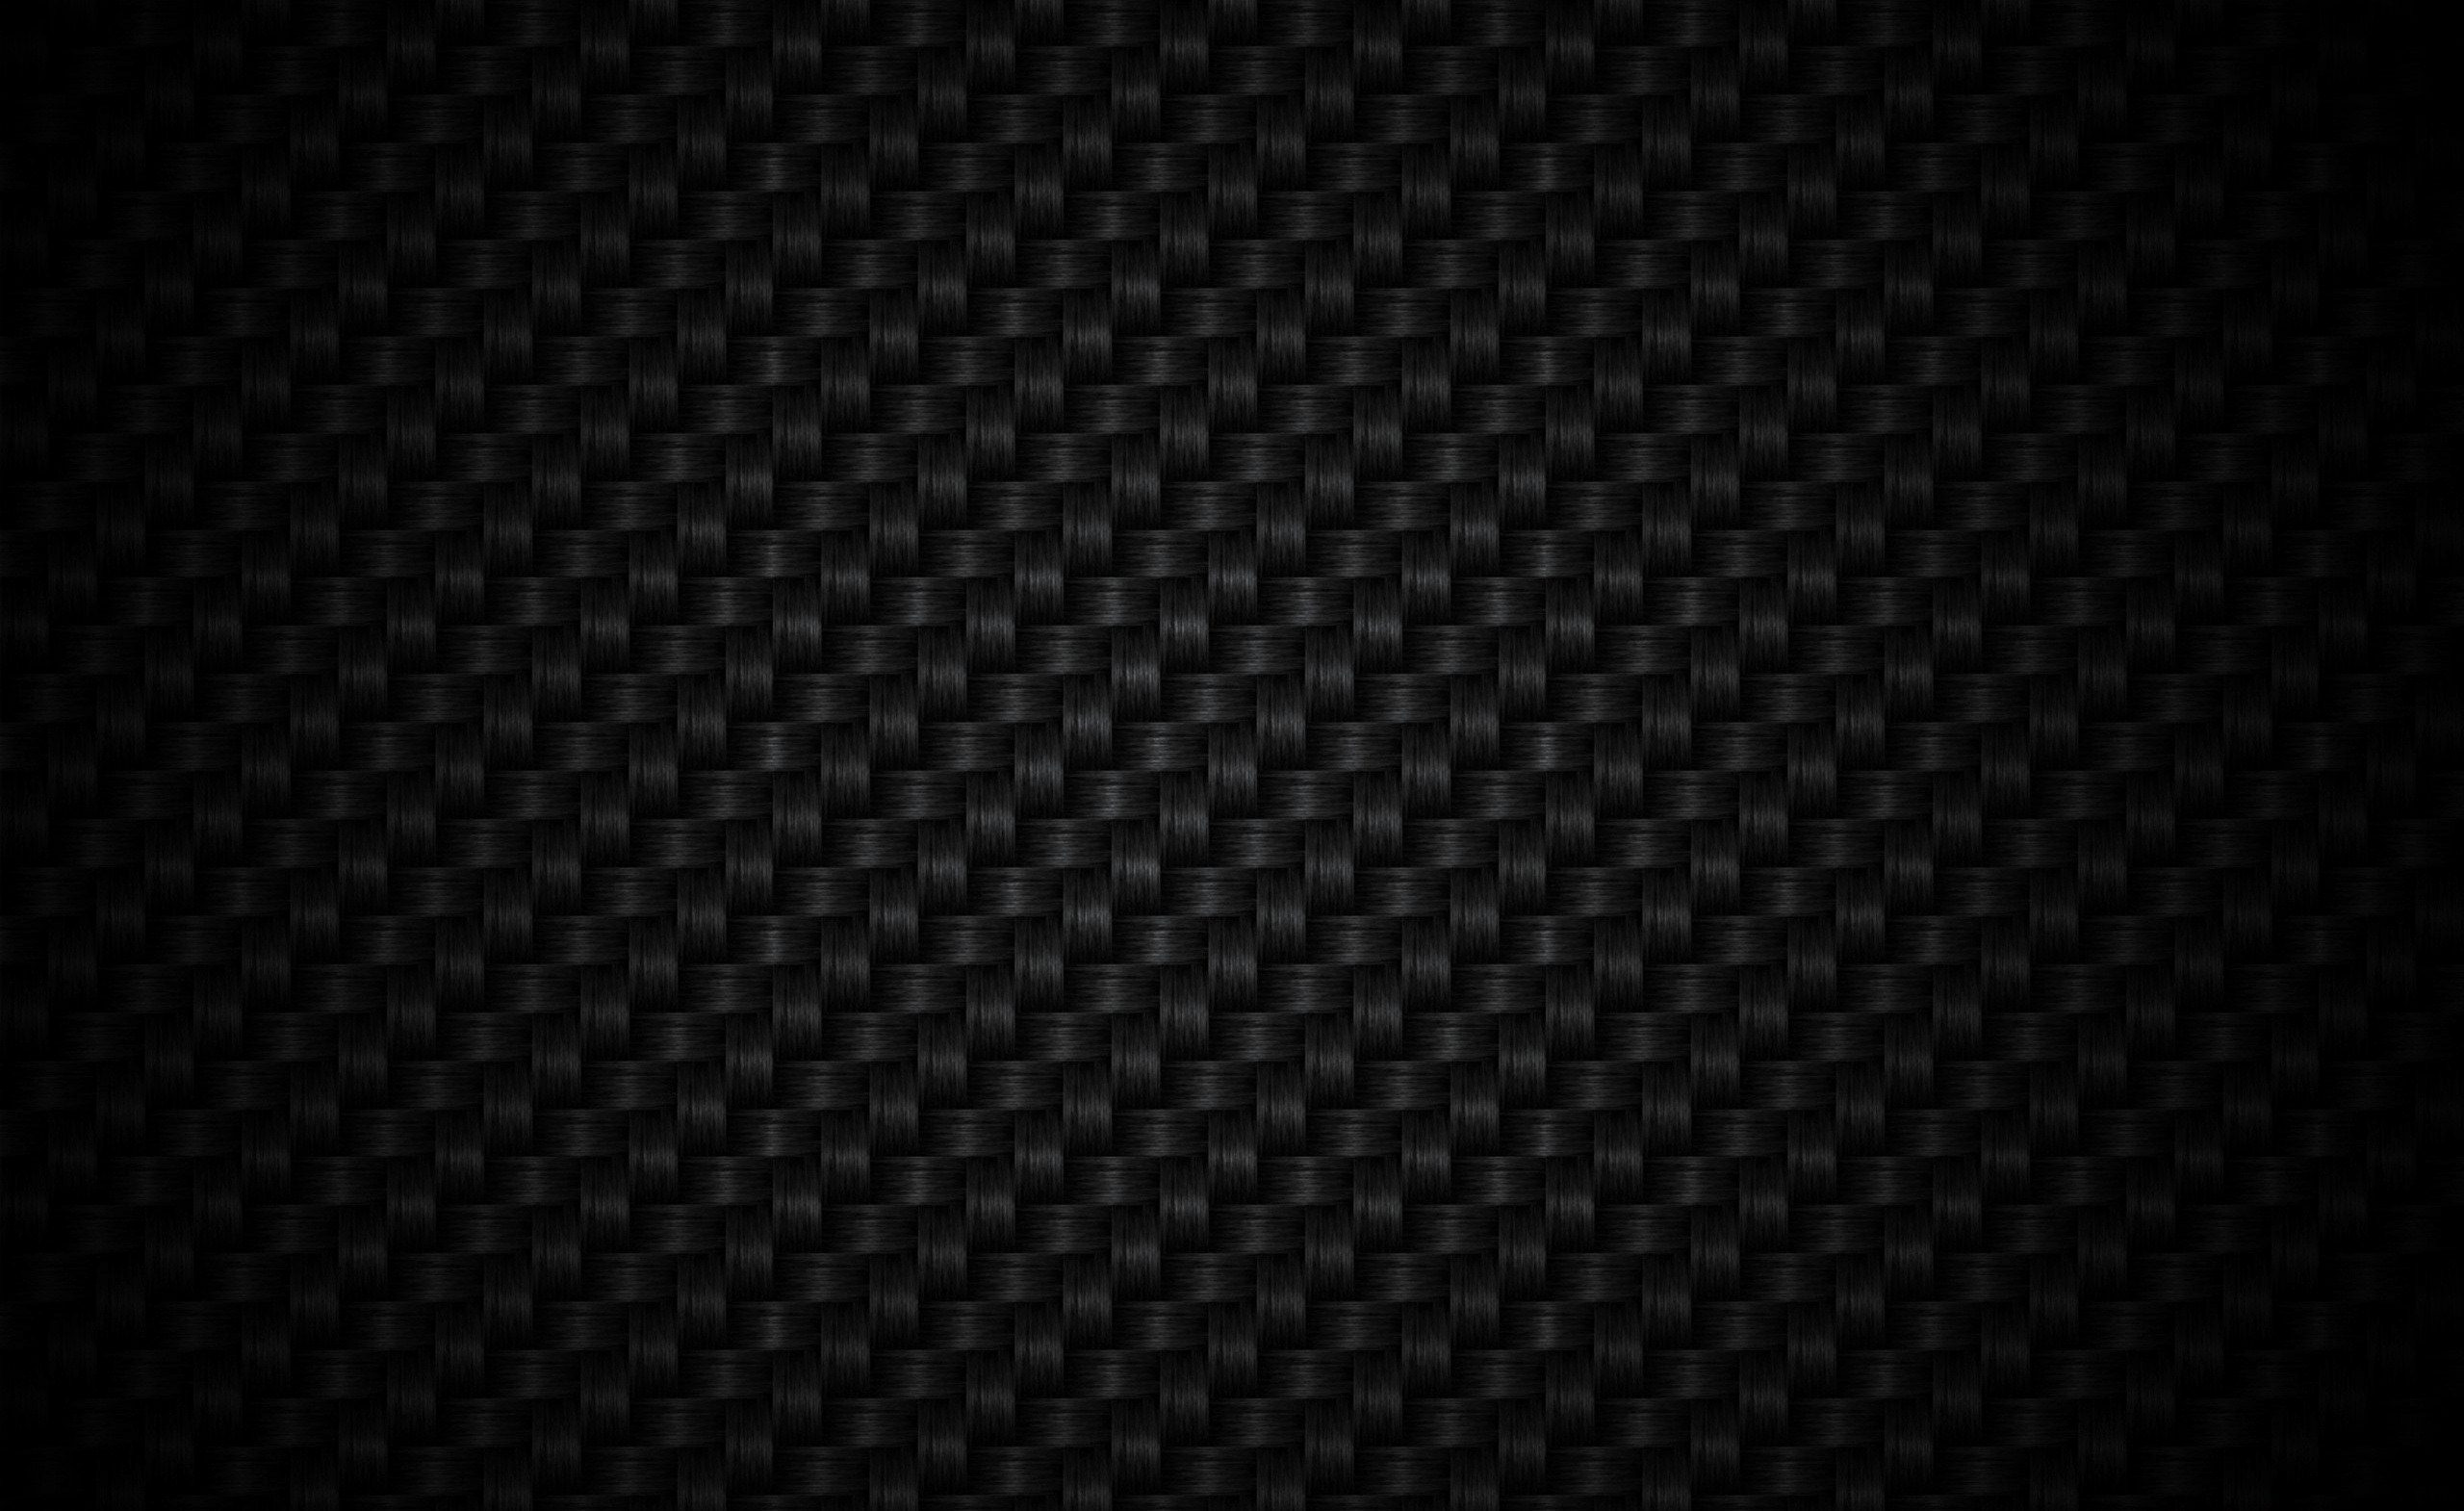 black texture desktop wallpaper download black texture wallpaper in hd 2560x1570